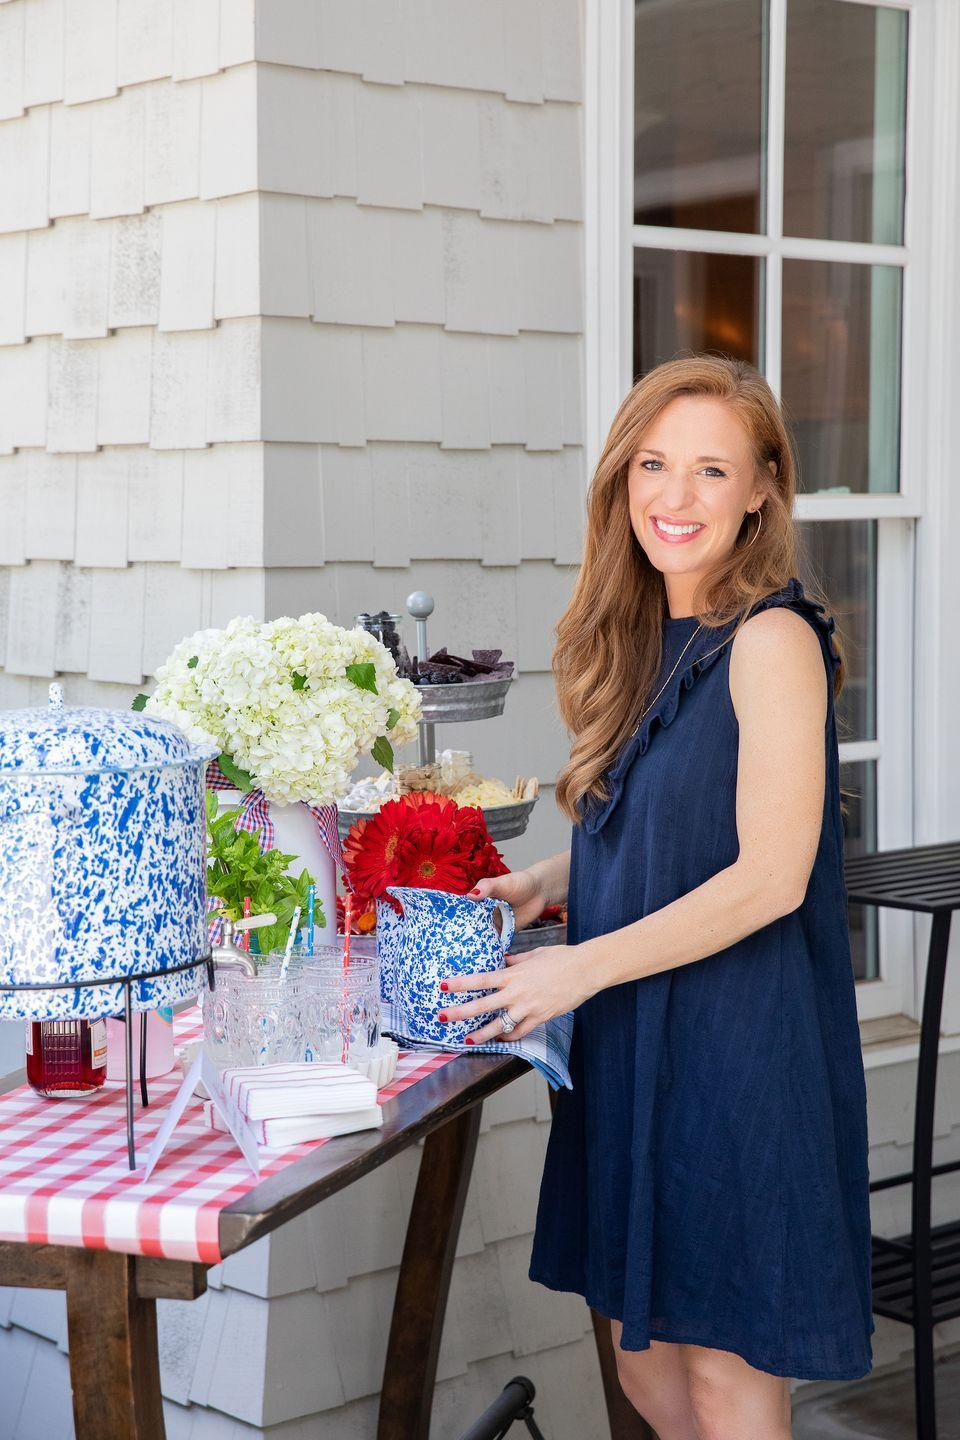 """<p>Katie Jacobs is a Nashville-based tastemaker and author of <em><a href=""""https://www.amazon.com/So-Much-Celebrate-Entertaining-Through/dp/0718075188"""" rel=""""nofollow noopener"""" target=""""_blank"""" data-ylk=""""slk:So Much to Celebrate"""" class=""""link rapid-noclick-resp"""">So Much to Celebrate</a>. </em>She is also a stylist, photographer, graphic designer, and founder of <em><a href=""""https://stylingmyeveryday.com/about"""" rel=""""nofollow noopener"""" target=""""_blank"""" data-ylk=""""slk:Styling My Everyday"""" class=""""link rapid-noclick-resp"""">Styling My Everyday</a>, </em>a popular lifestyle blog. (Follow her at <a href=""""https://www.instagram.com/katiejacobsnashville/?hl=en"""" rel=""""nofollow noopener"""" target=""""_blank"""" data-ylk=""""slk:@katiejacobsnashville"""" class=""""link rapid-noclick-resp"""">@katiejacobsnashville</a>)</p>"""